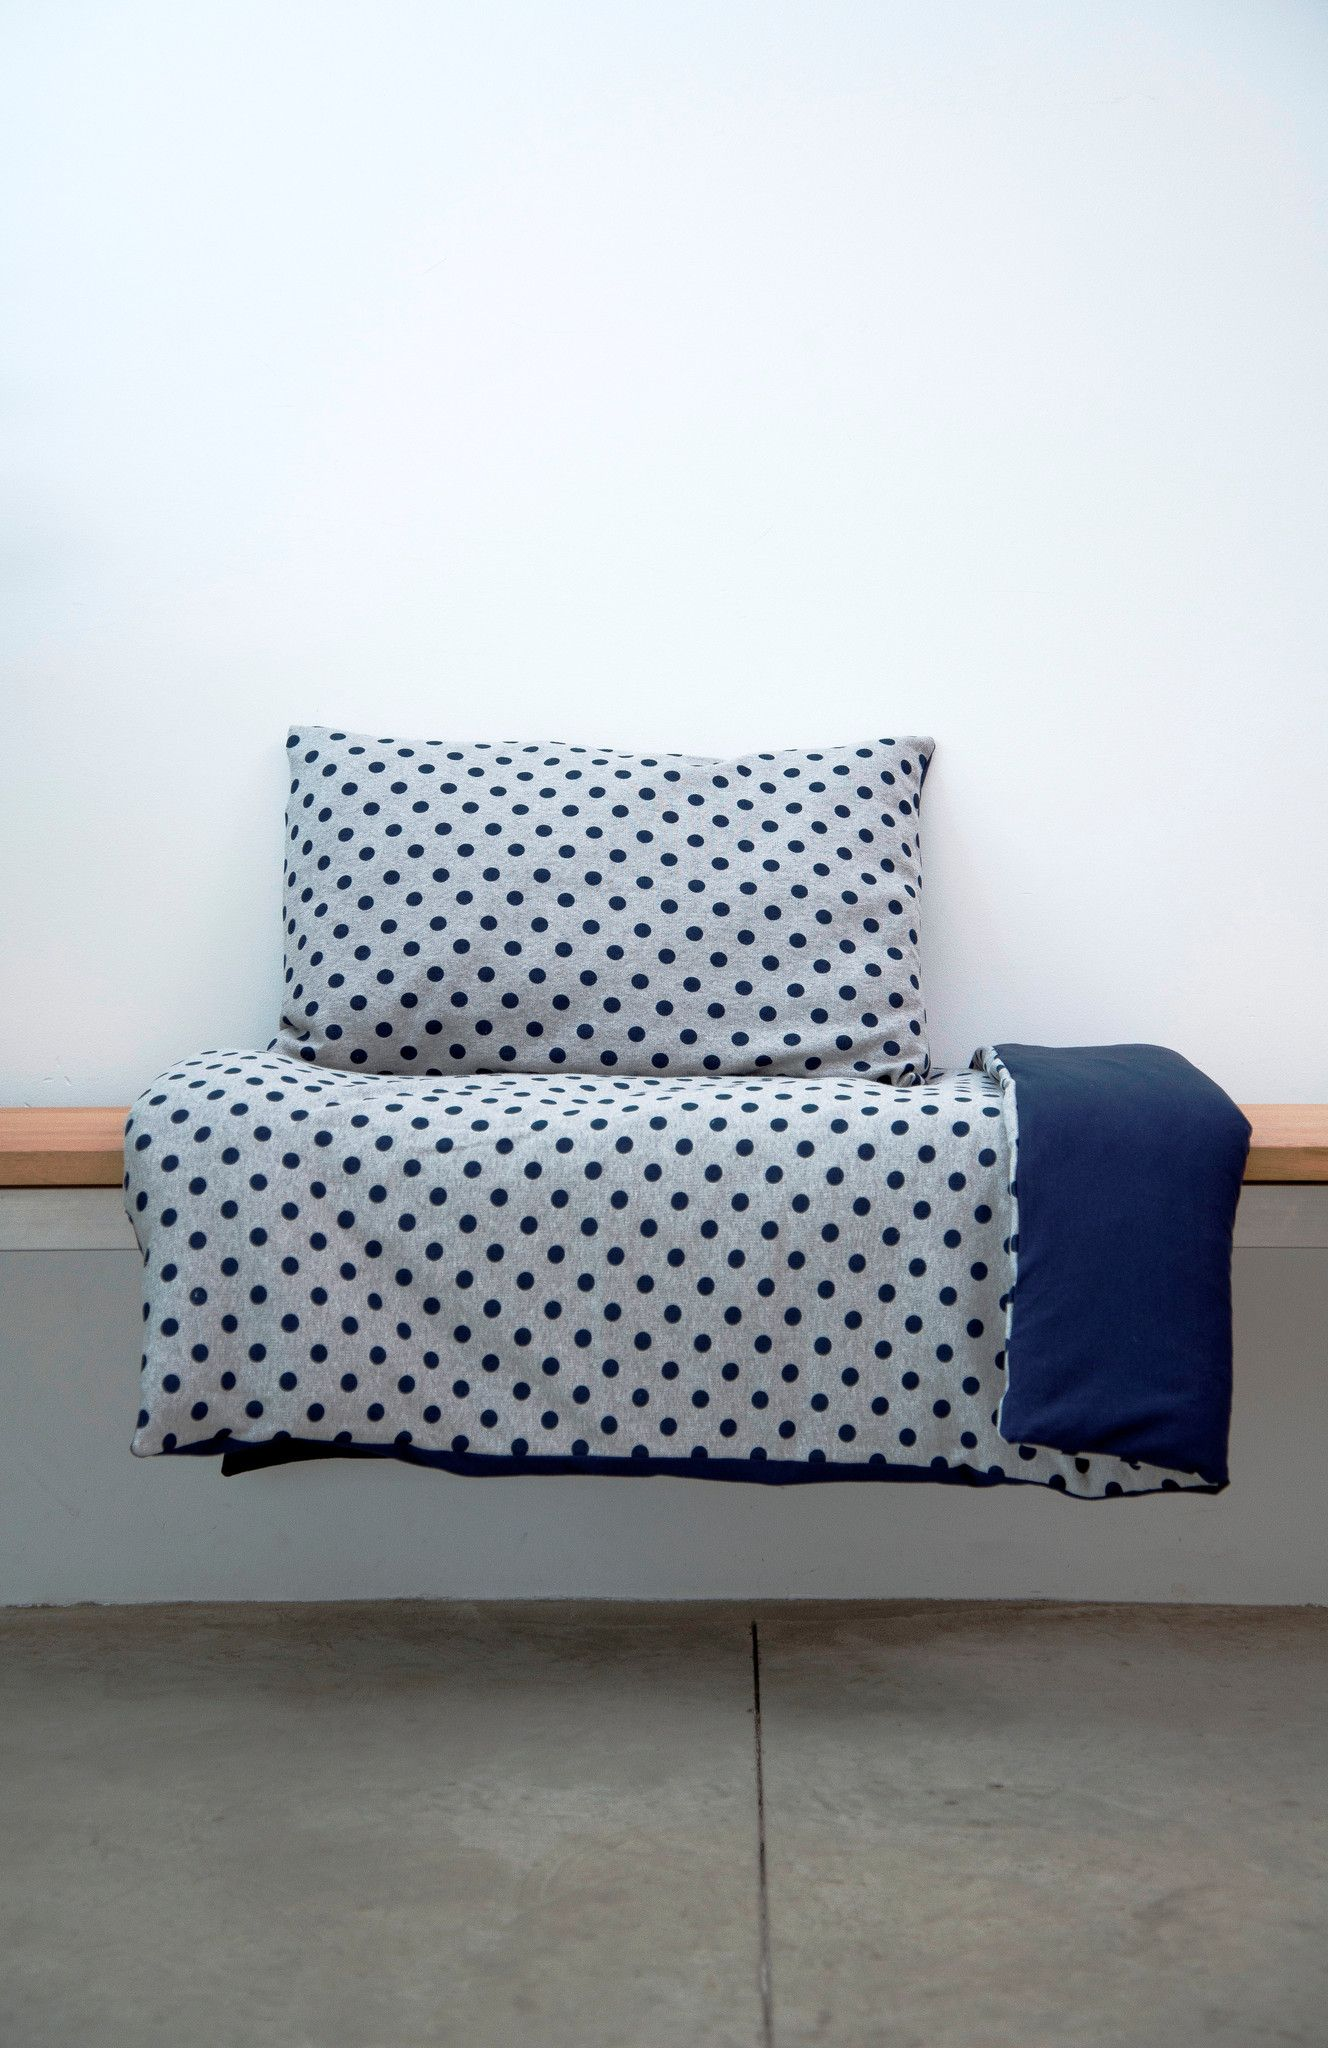 Connecting The Dots Duvet Cover | Duvet and Bed sets